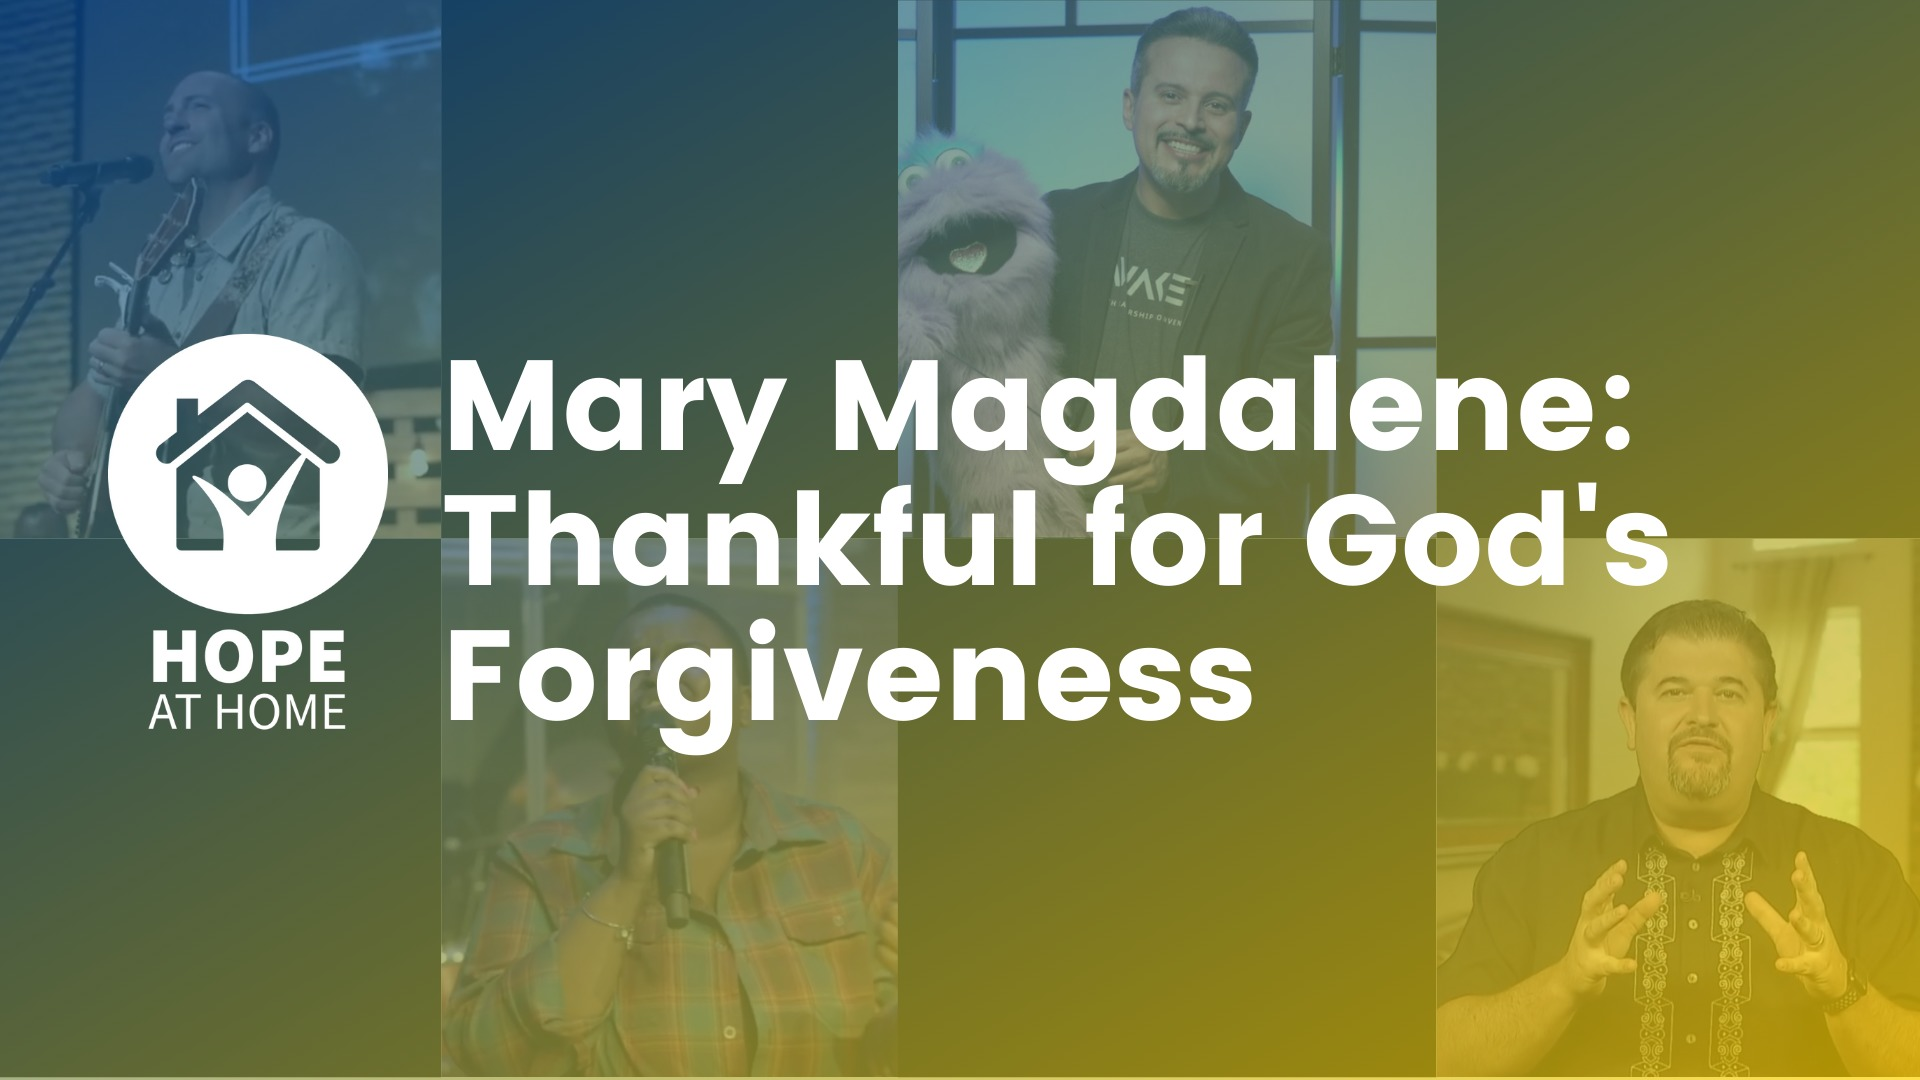 Mary Magdalene: Thankful for God's Forgiveness